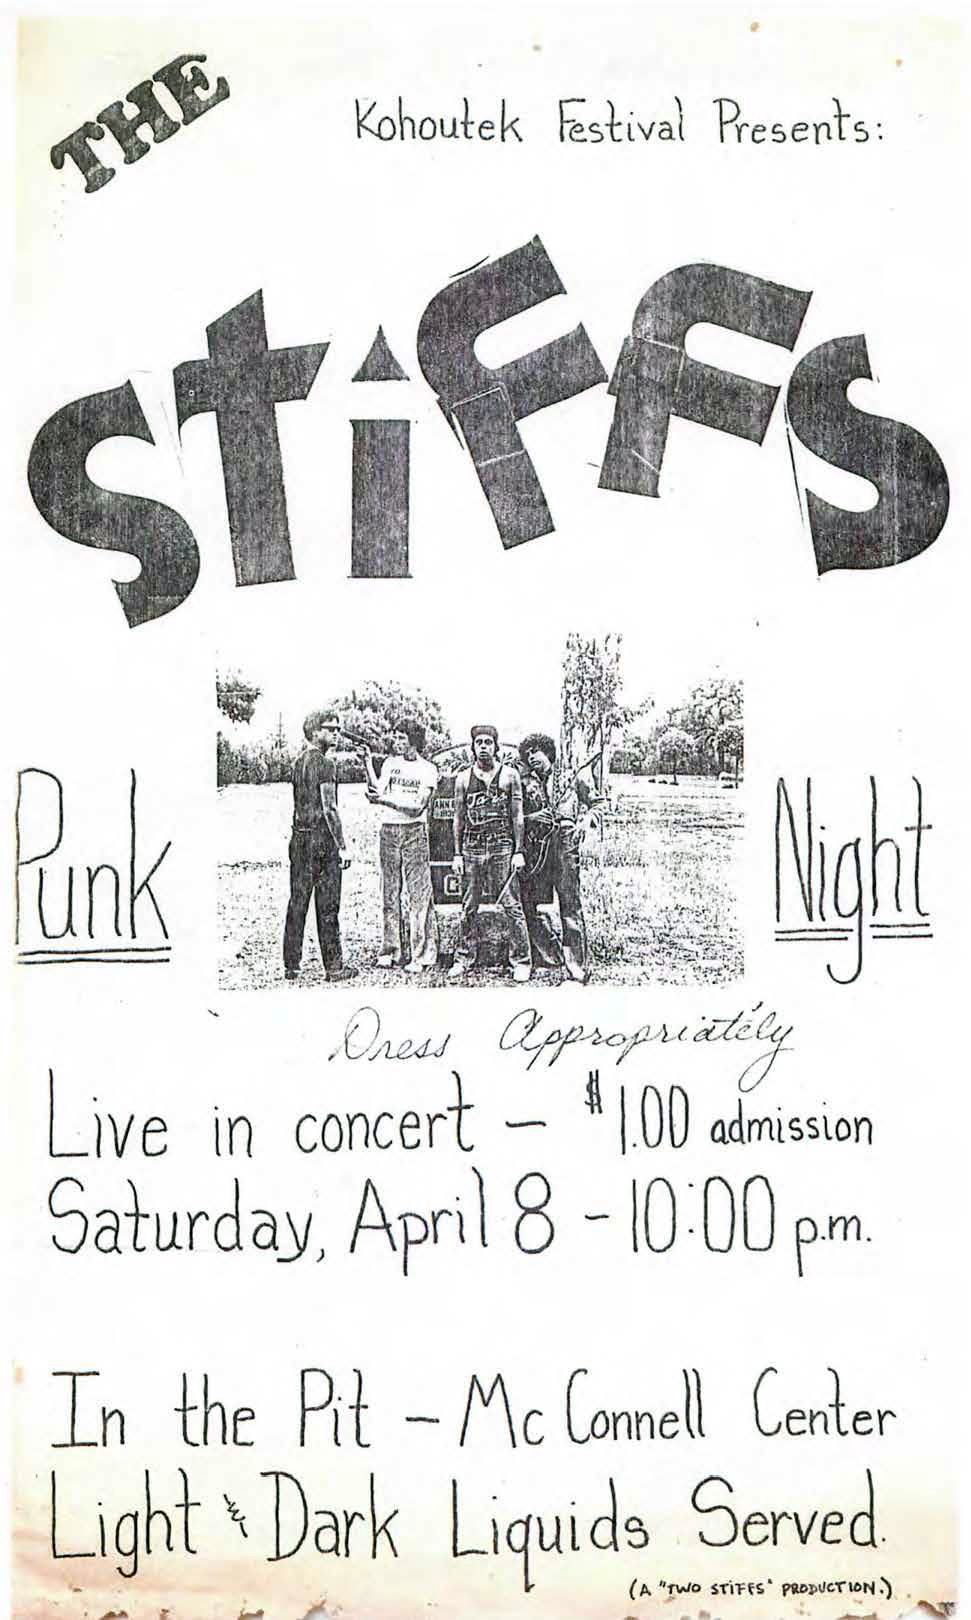 1970s - A poster advertising a concert within a concert.